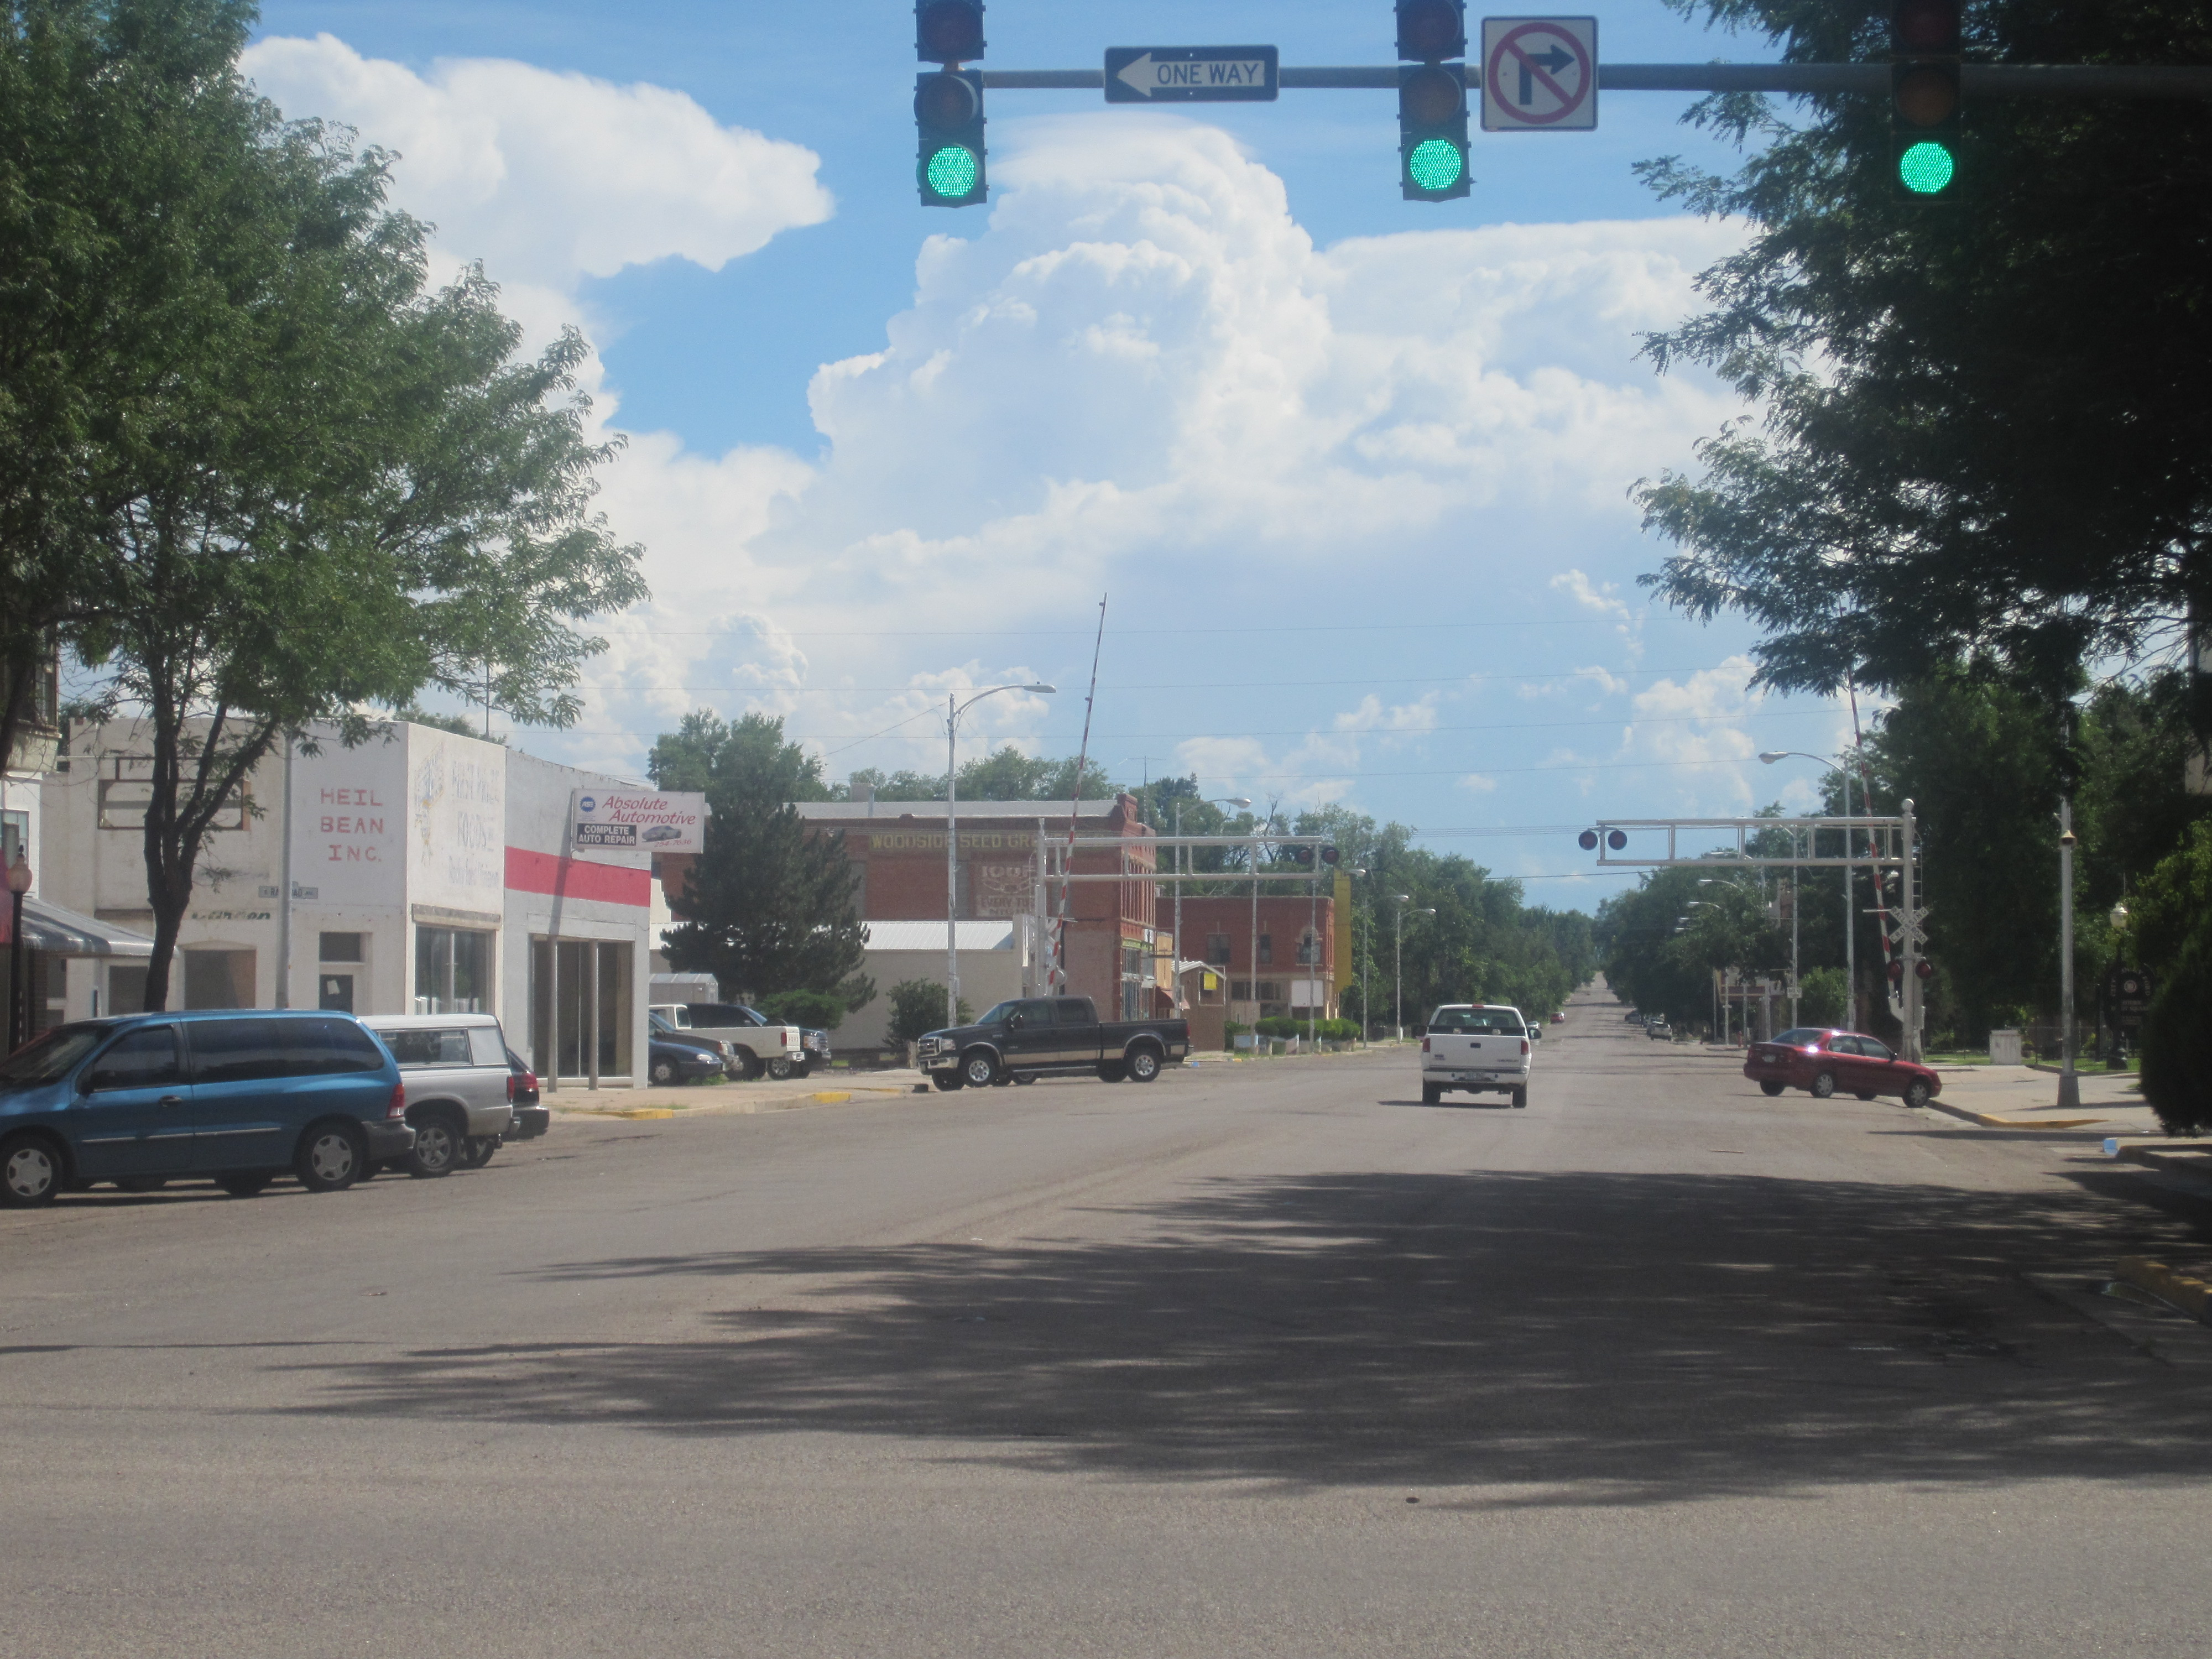 File:Downtown Rocky Ford, CO IMG 5672.JPG - Wikimedia Commons